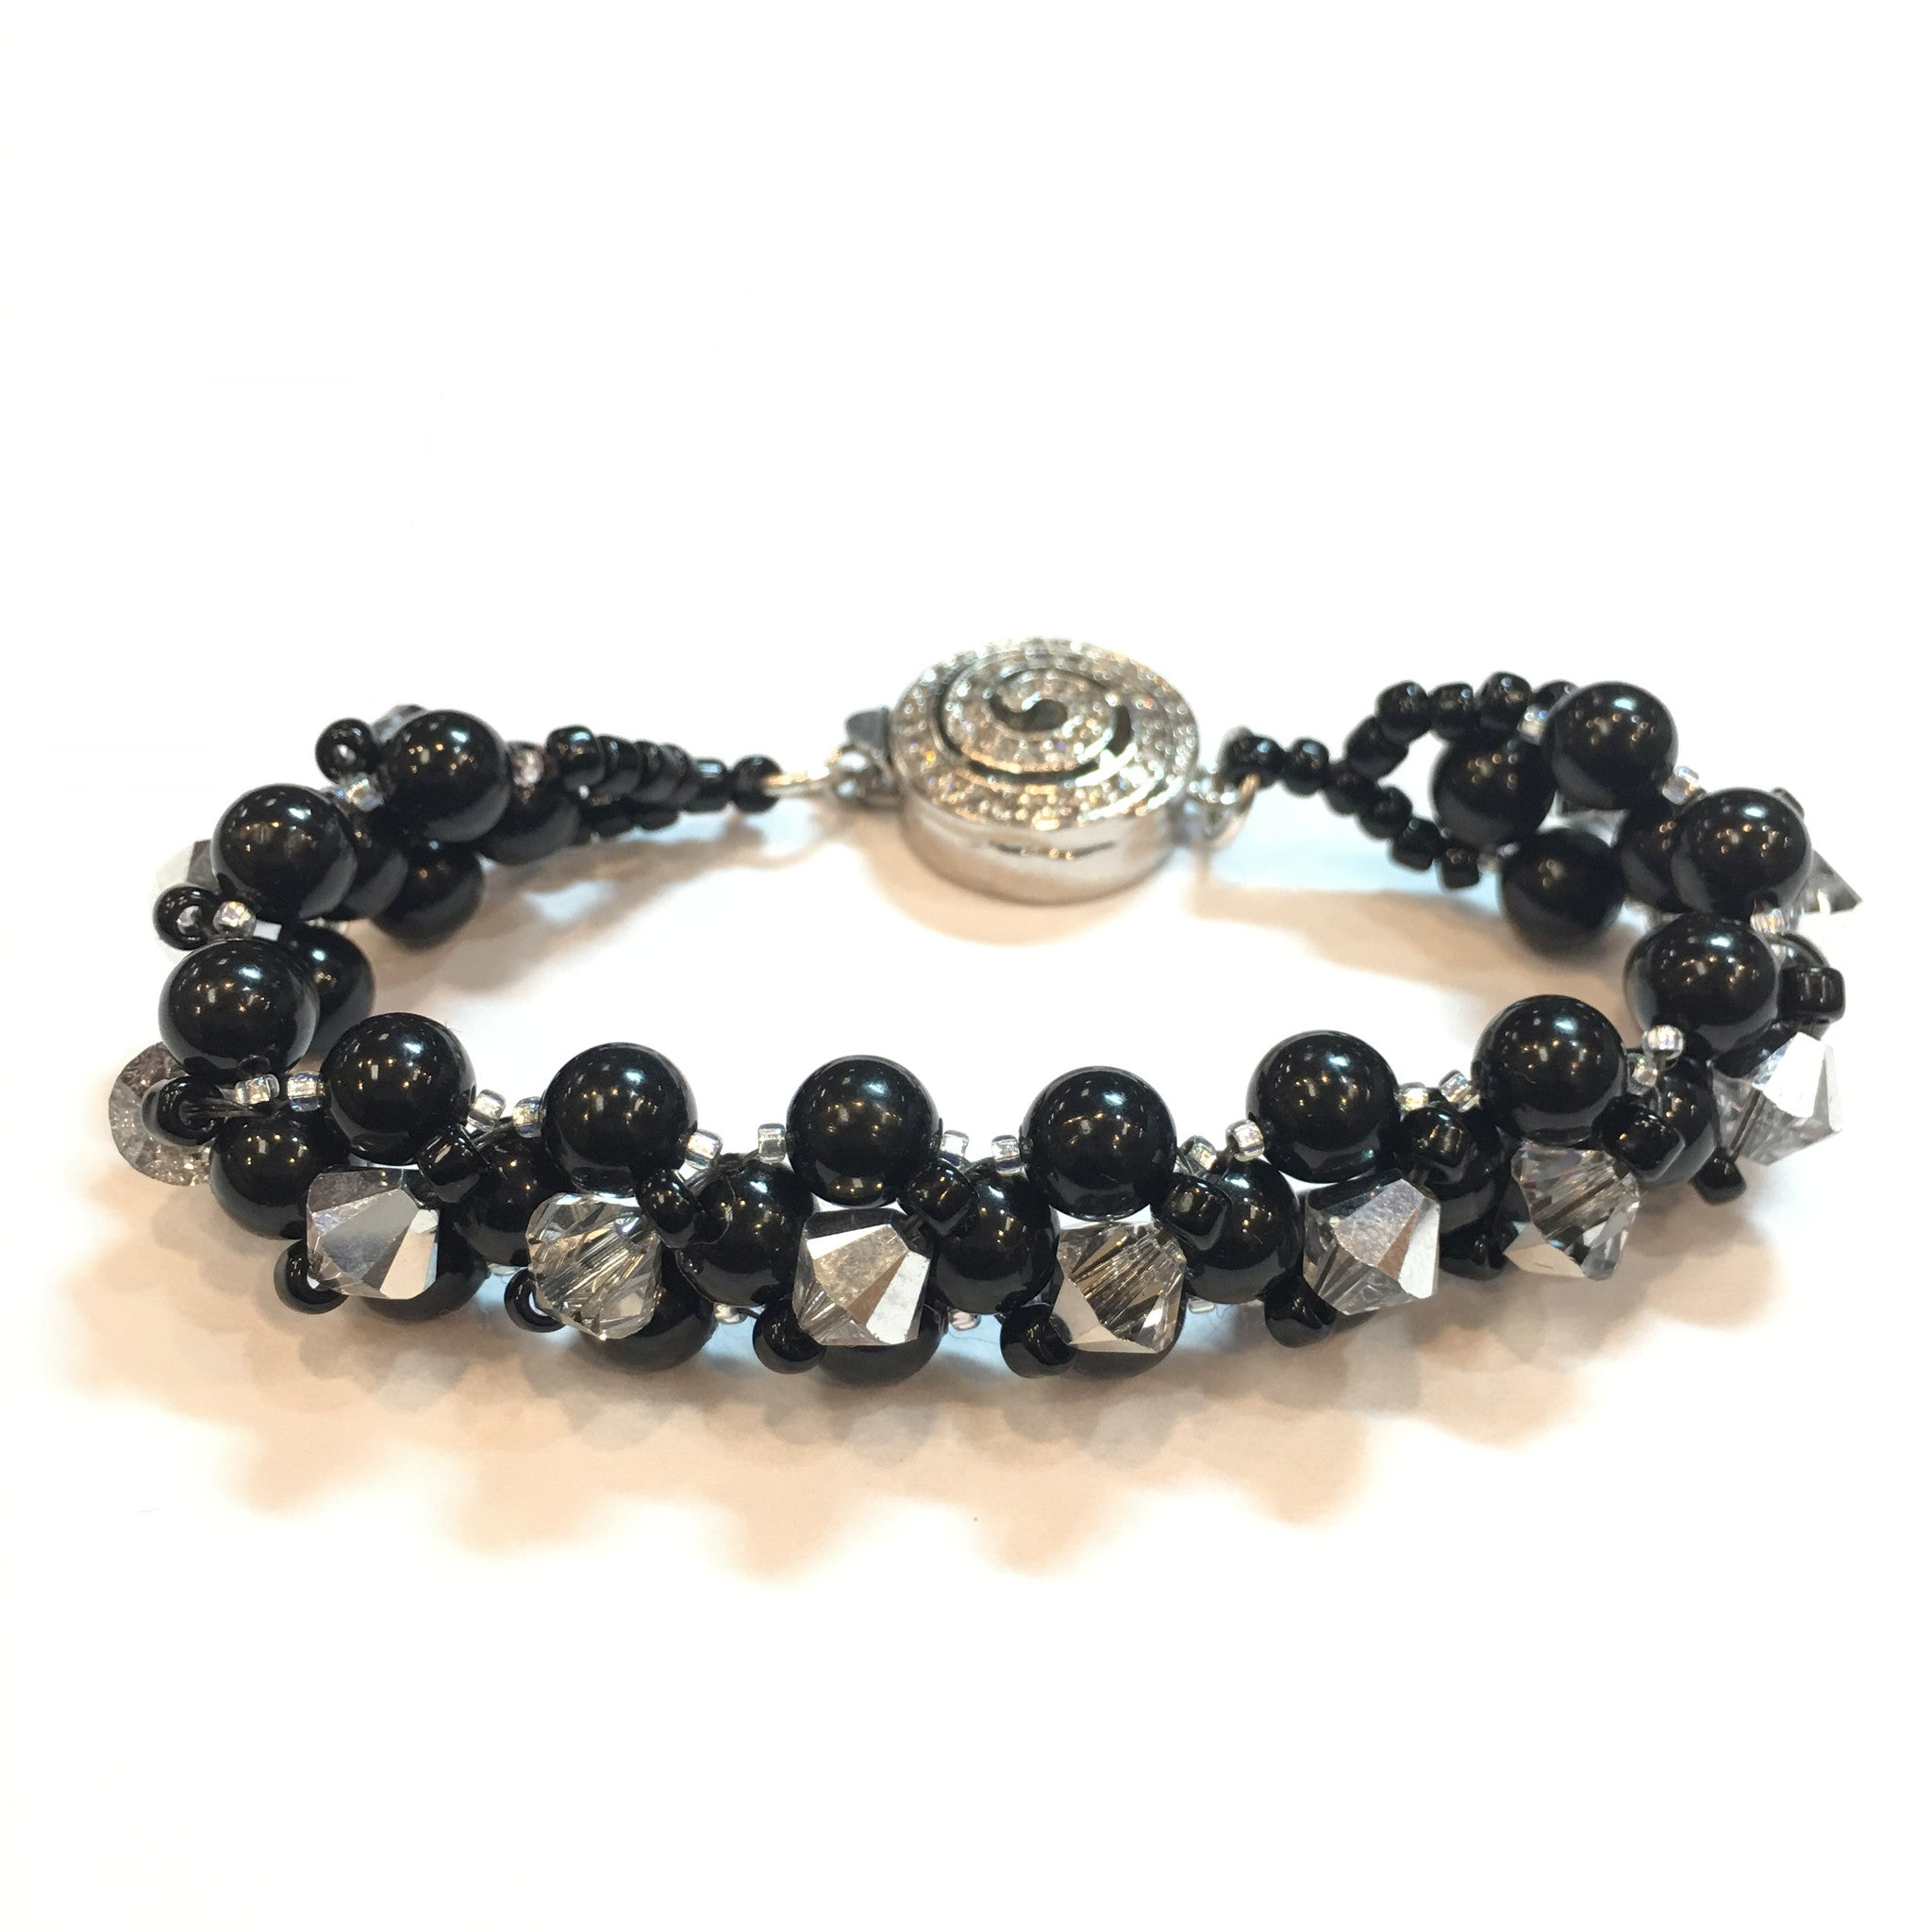 Swarovski Black Pearl and Crystal Bracelet - Real Chic Boutique  - 1